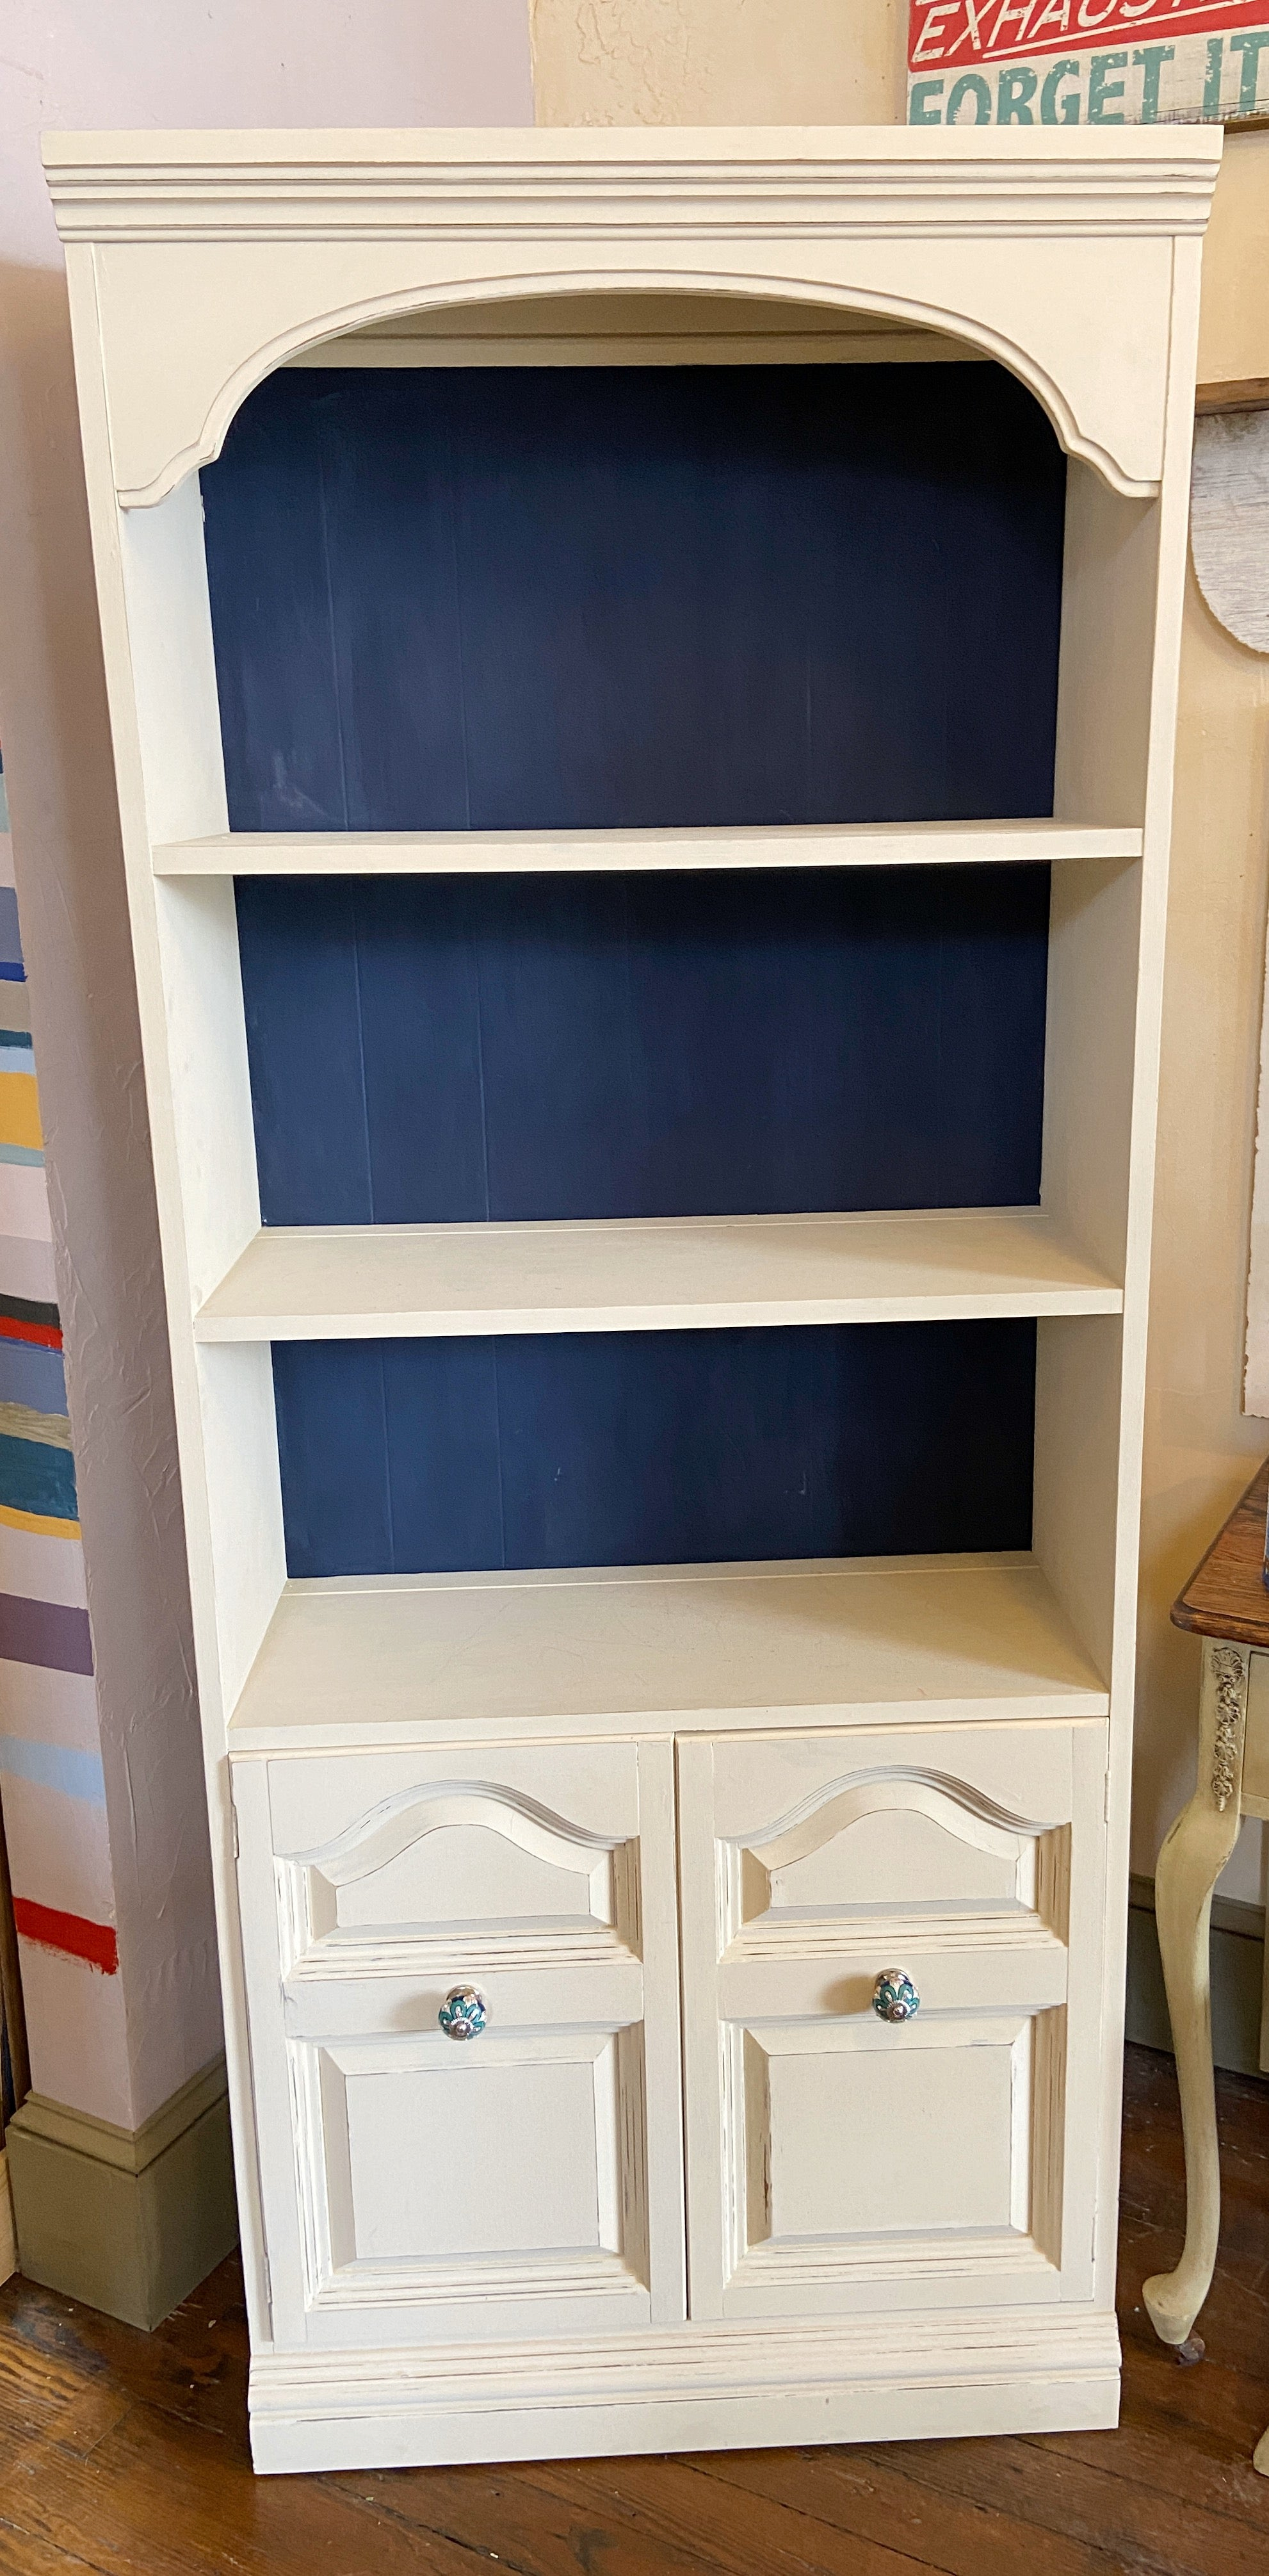 Shelf Unit with Double Doors